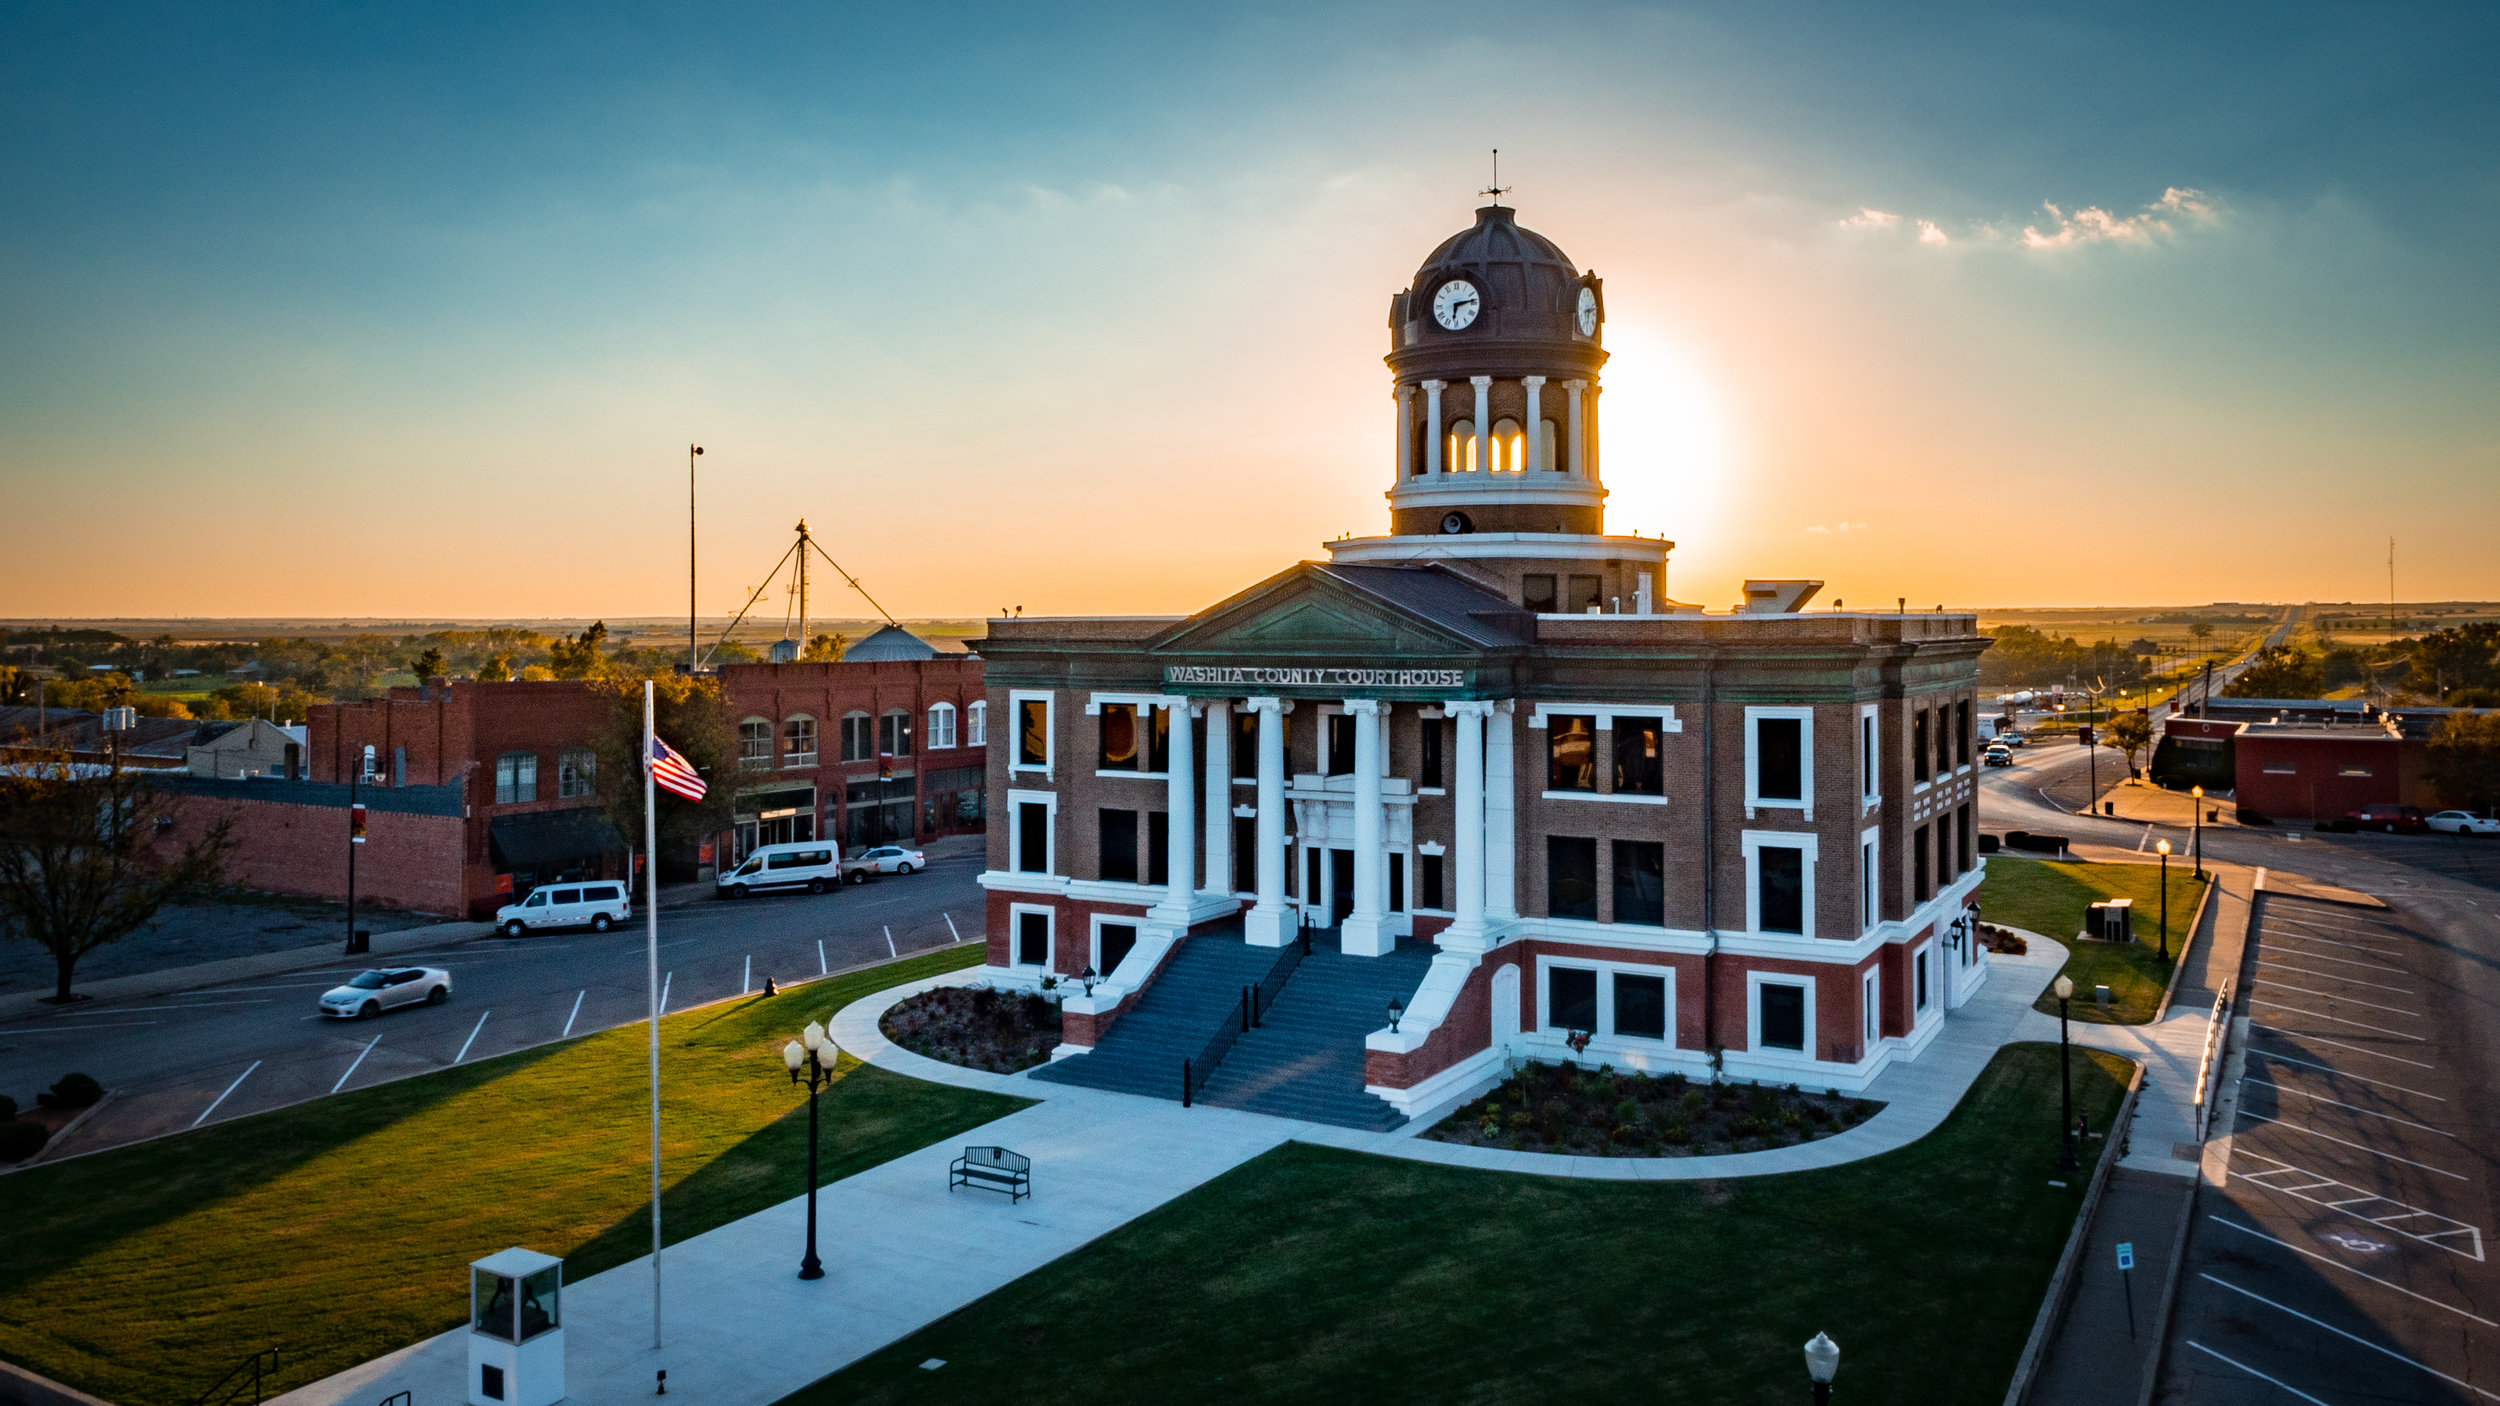 Cordell_Courthouse-AIP-Photo_by_Branden_Hart-4670016.jpg